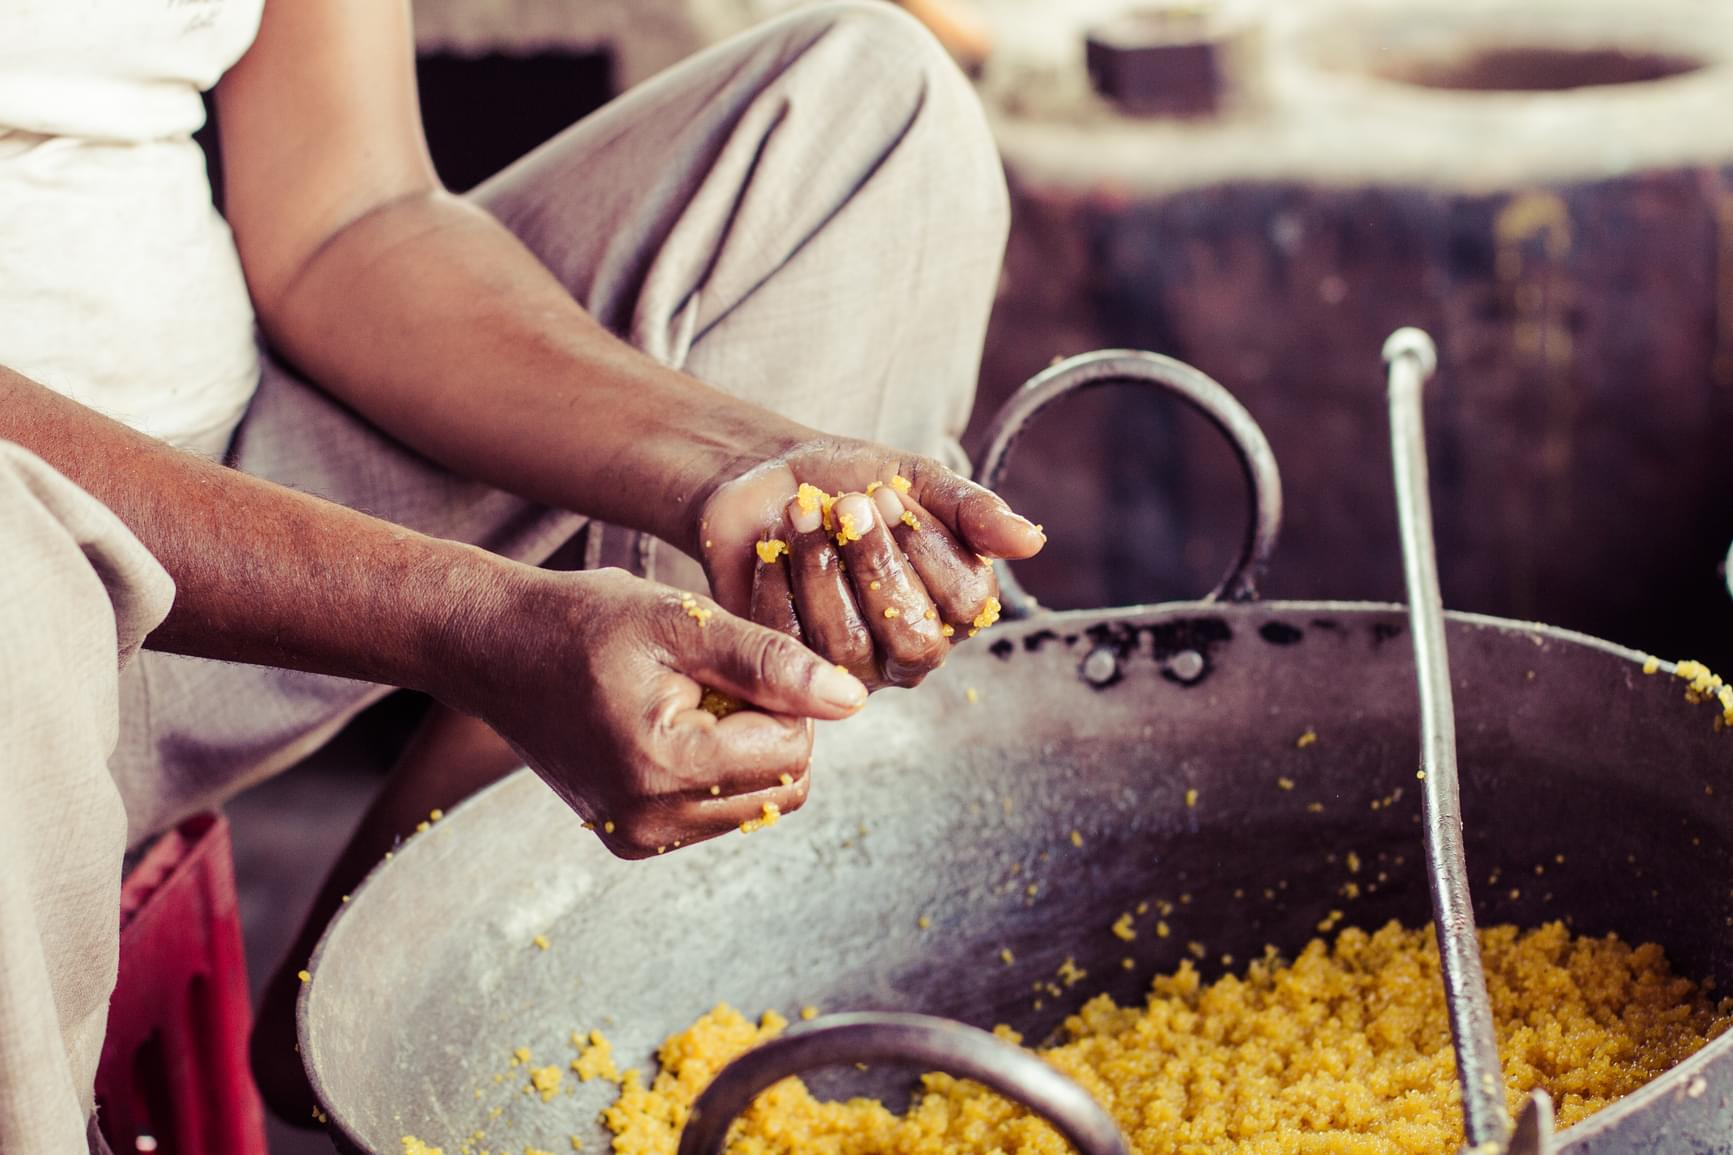 Photograph of Indian street food being made